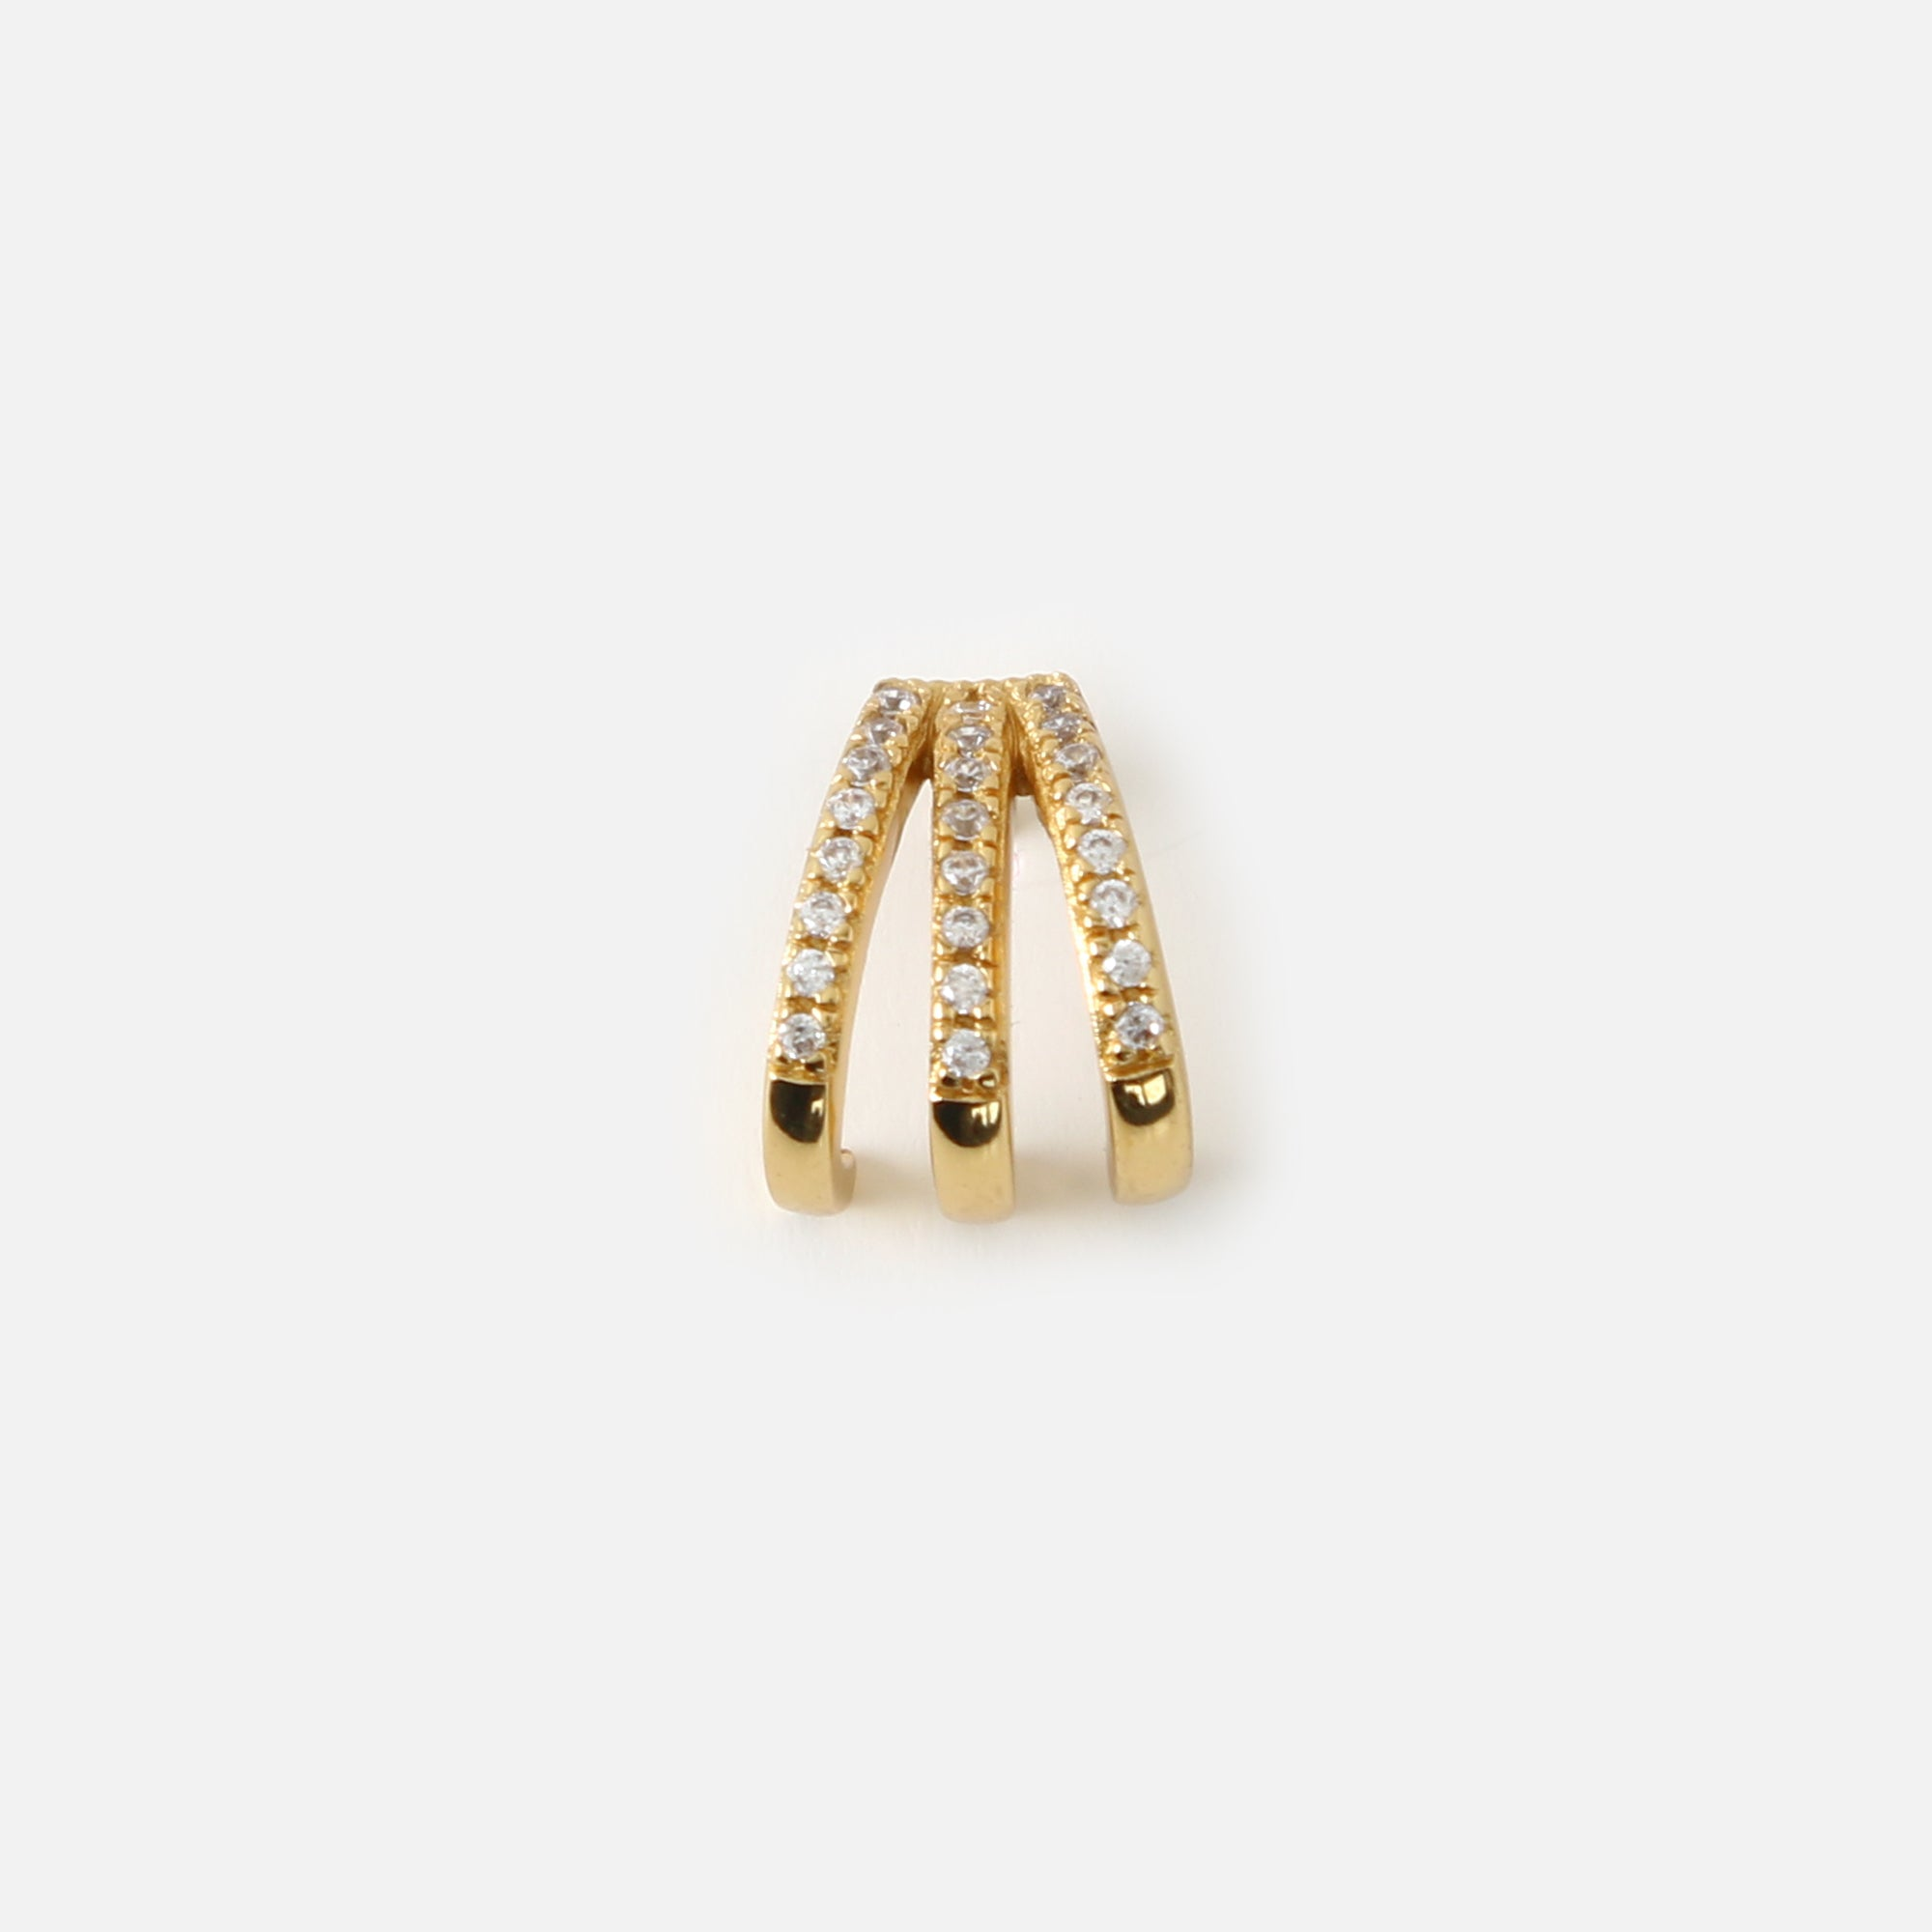 Pave Three Bar Stud Ear Cuff